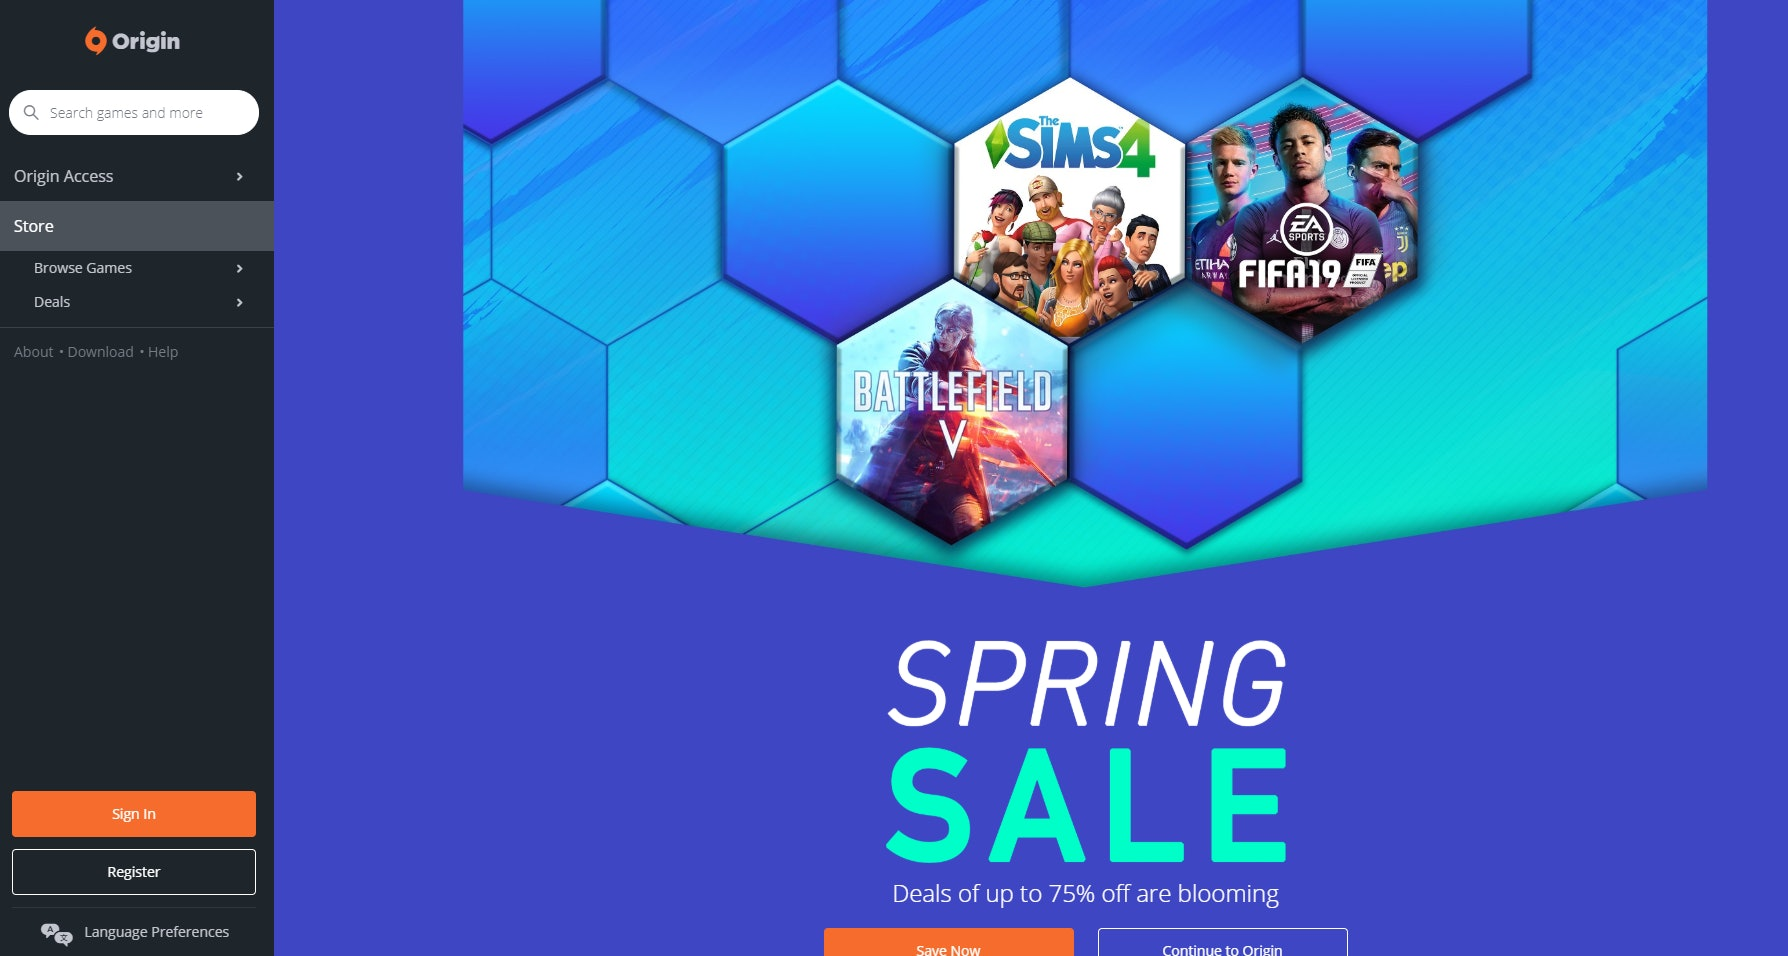 Where to find the best sales on PC games like 'The Sims